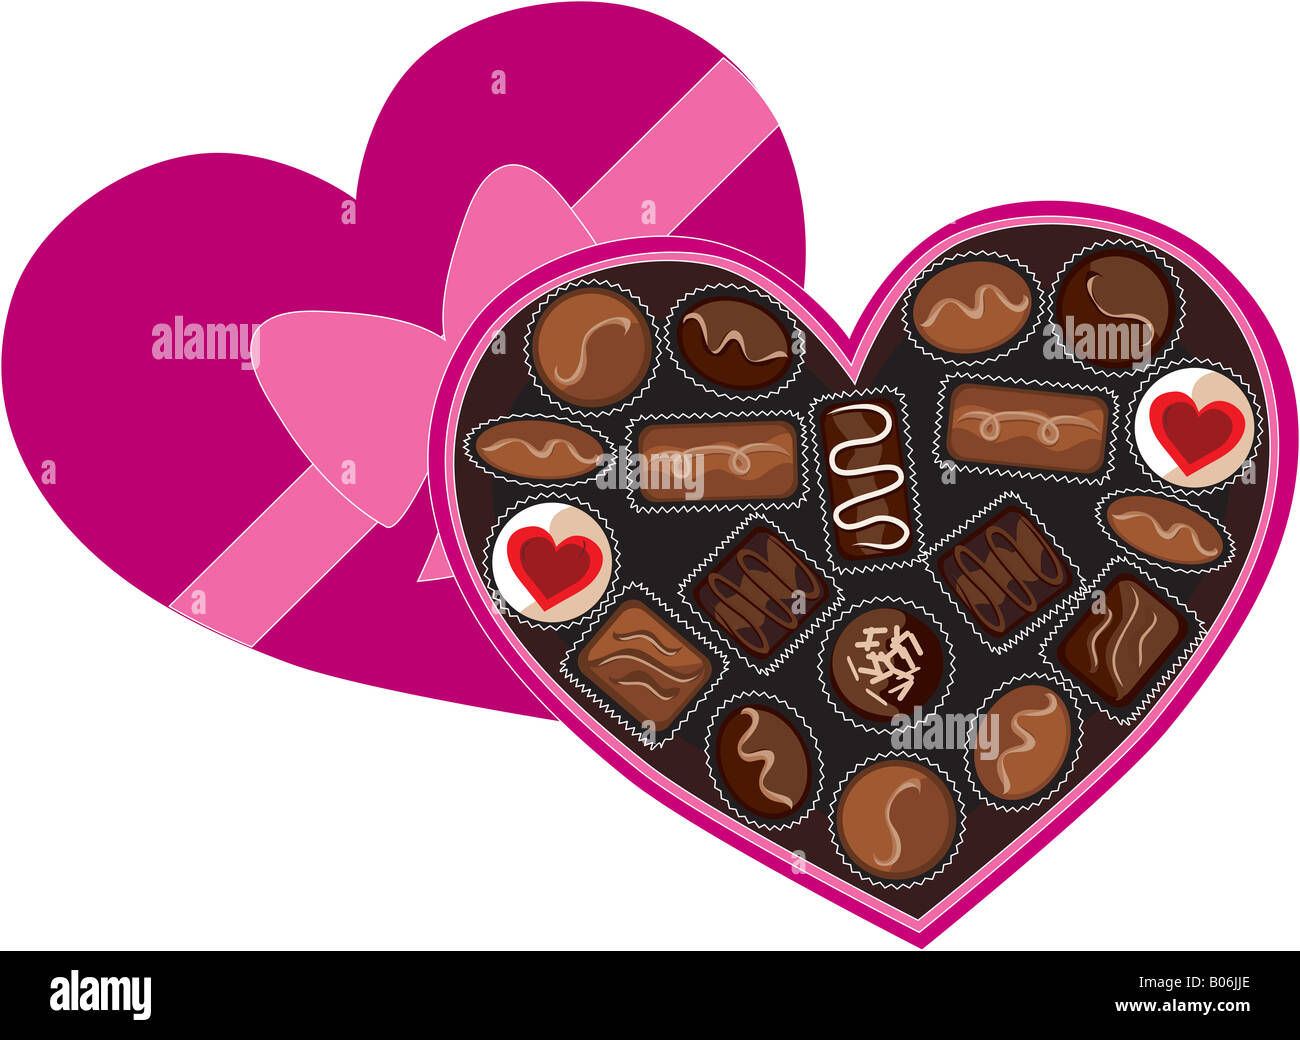 Heart Box Ribbon Chocolates Valentine Stock Photos Heart Box